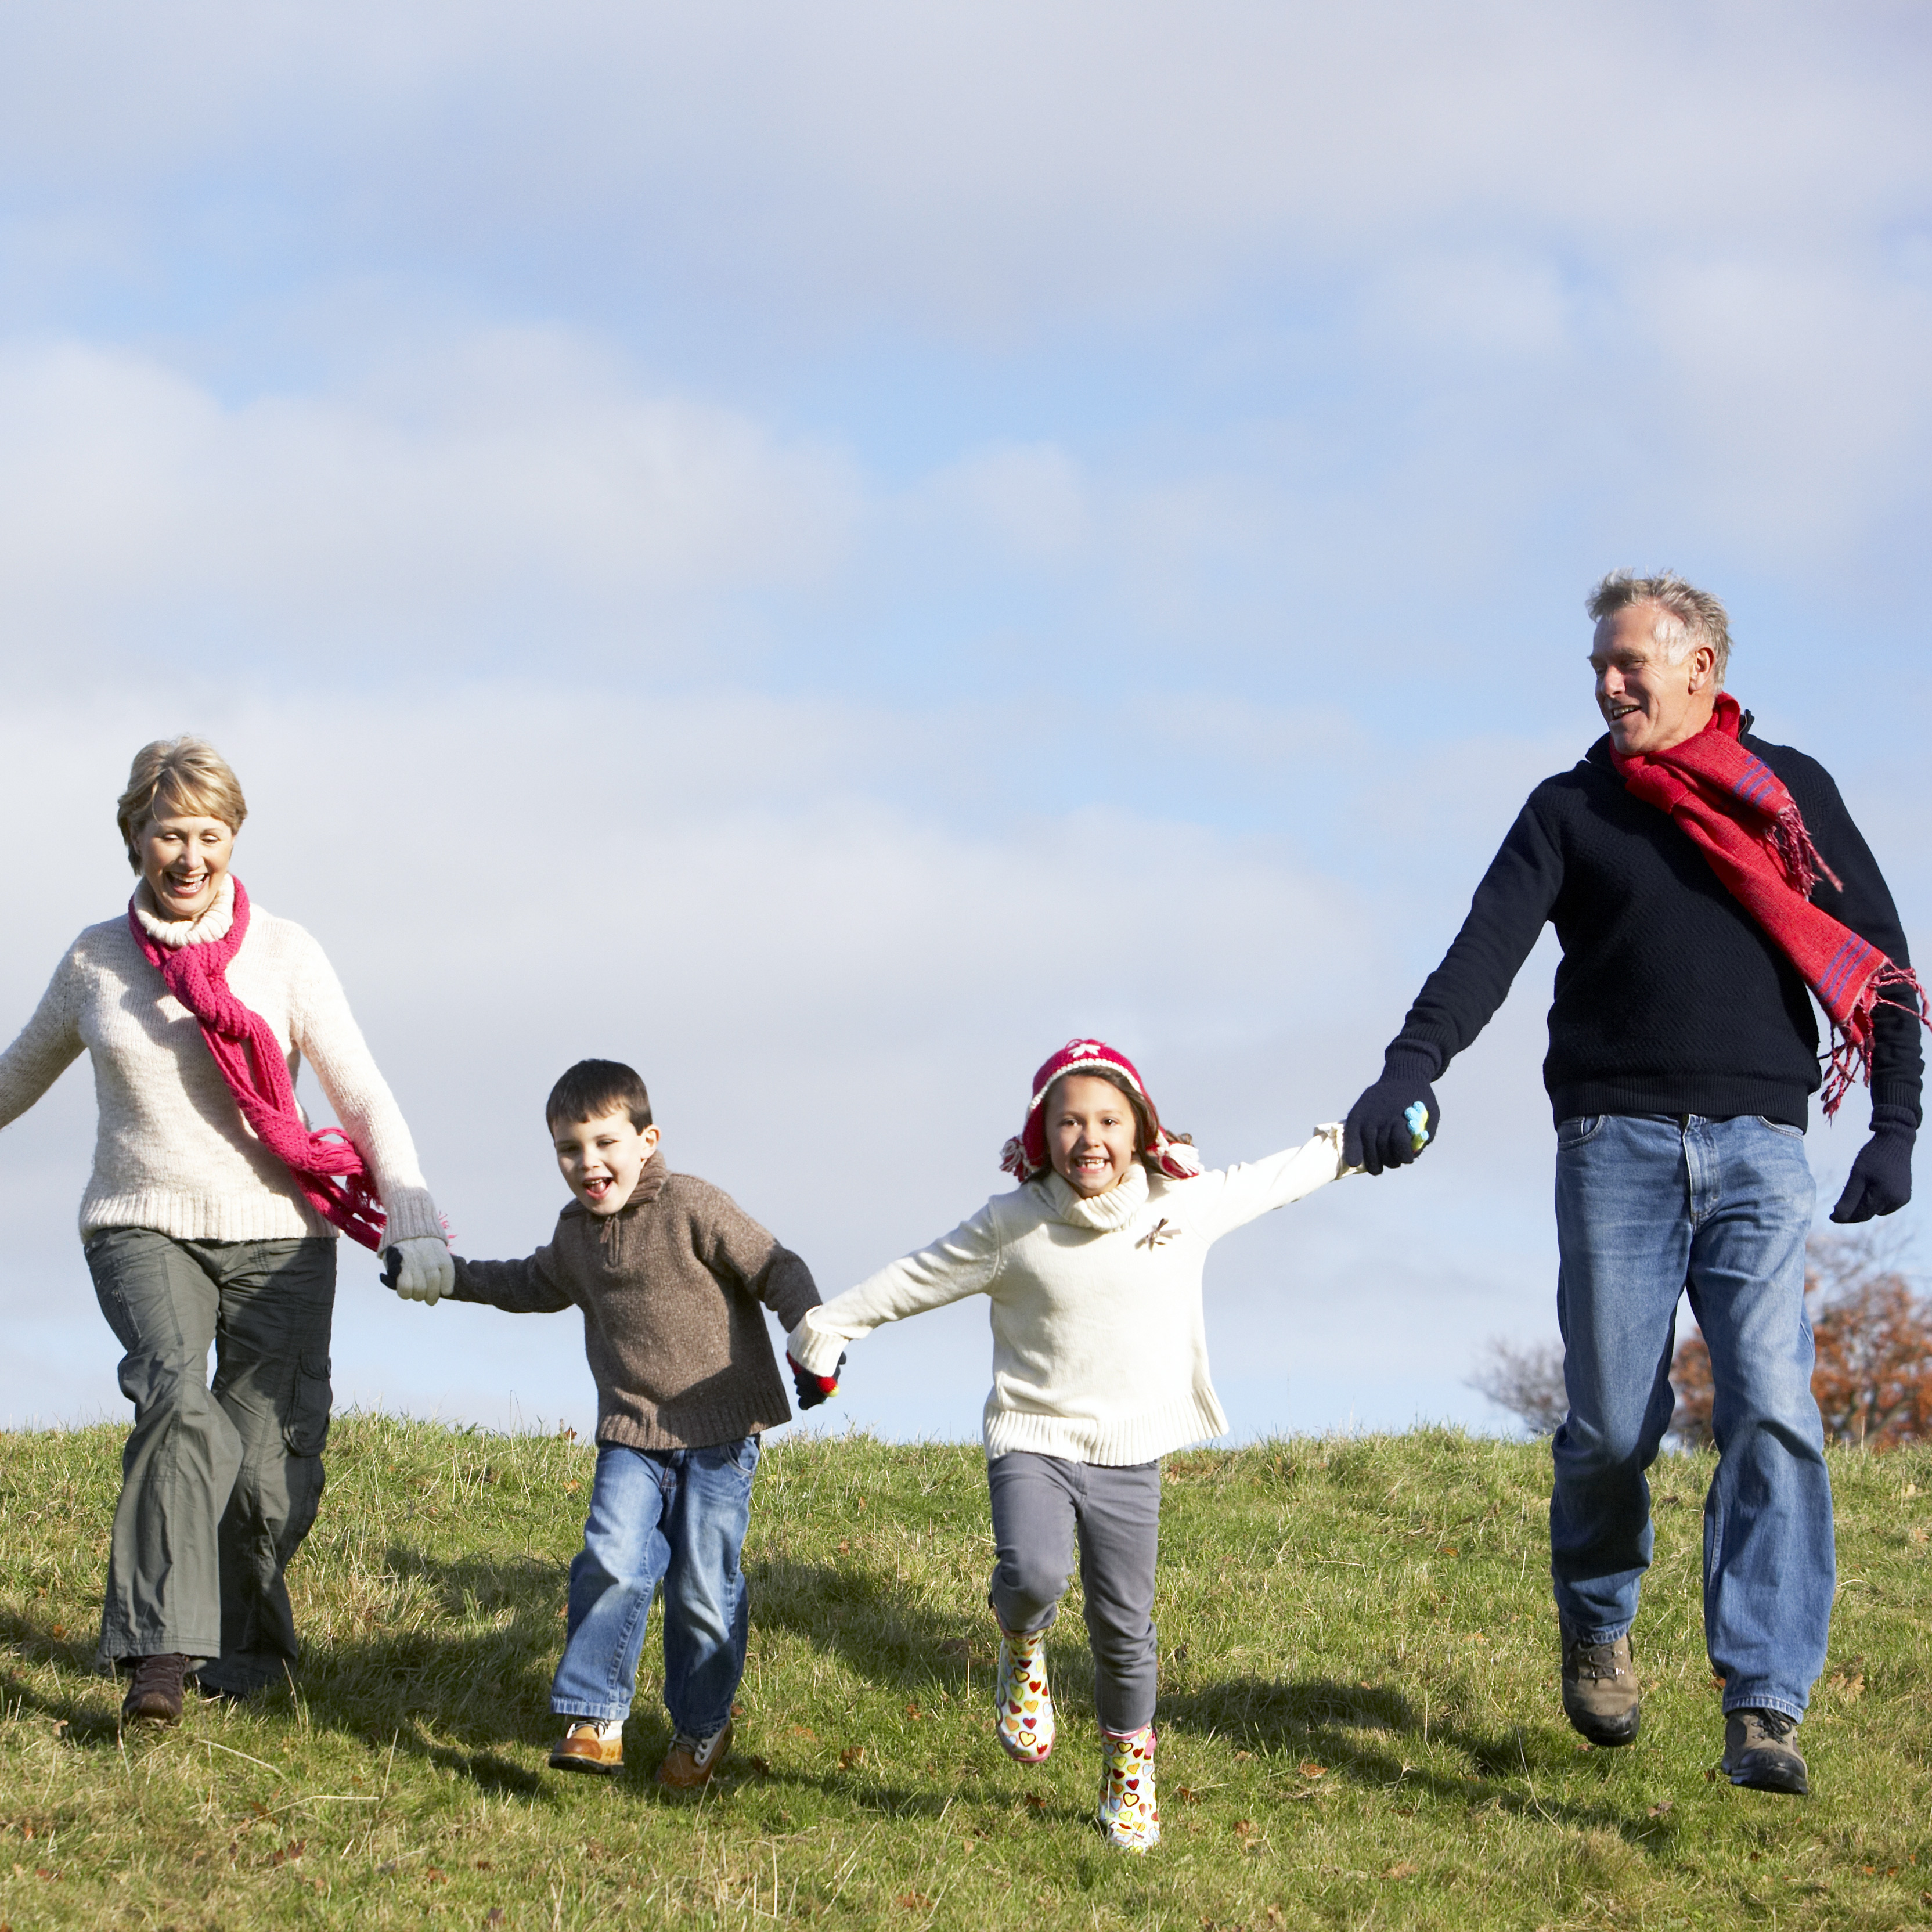 how to make sure that grandkids stay safe